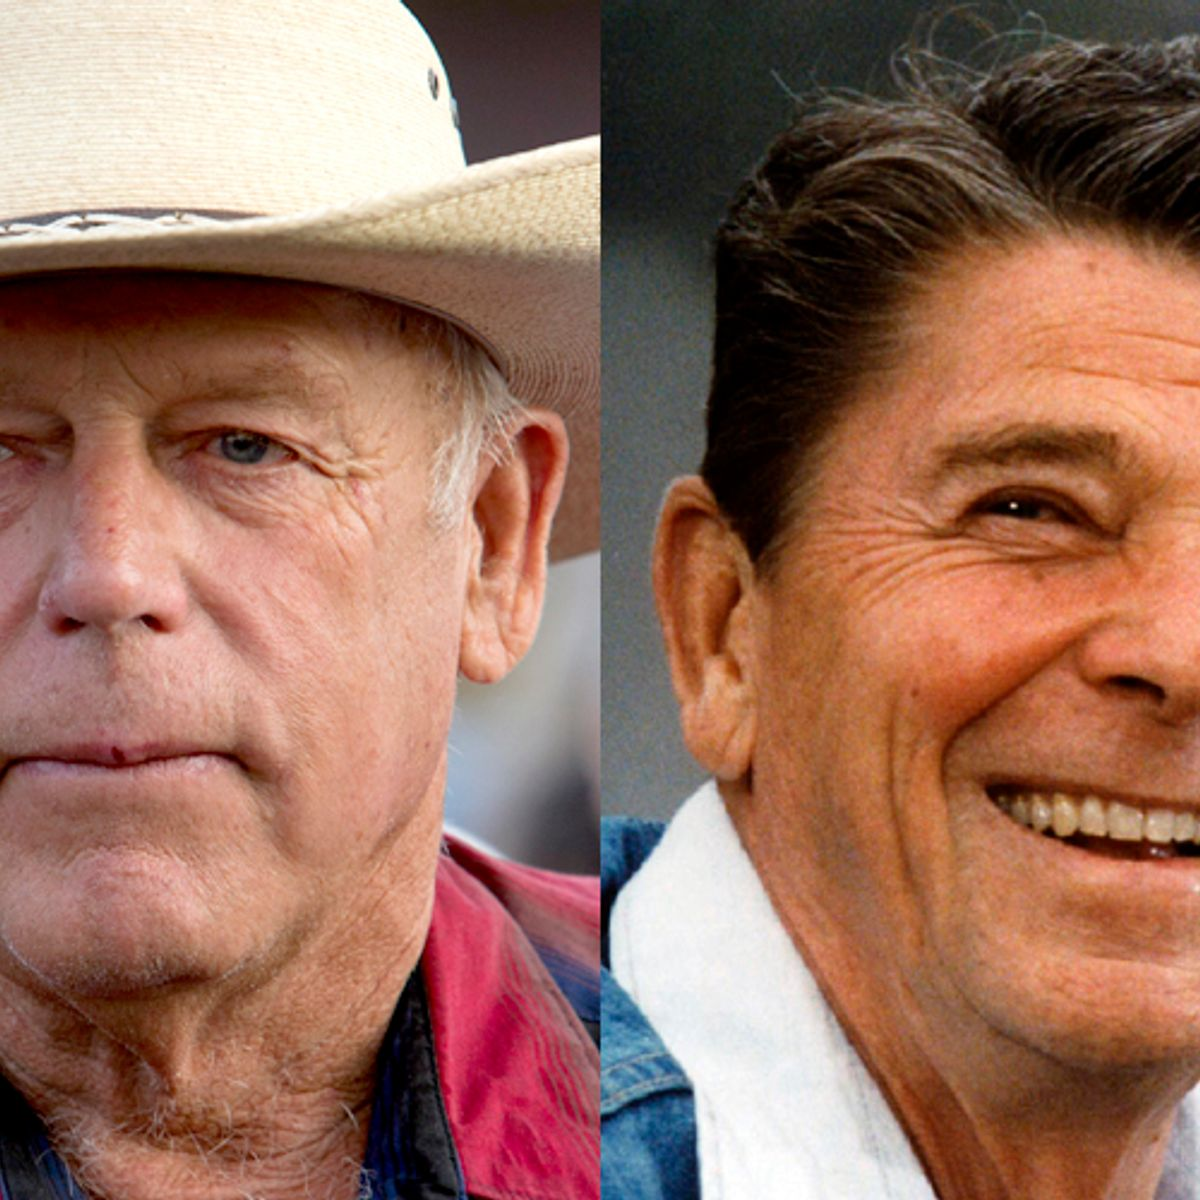 Ronald Reagan owns Cliven Bundy: He's born of GOP racial and anti-government hostility